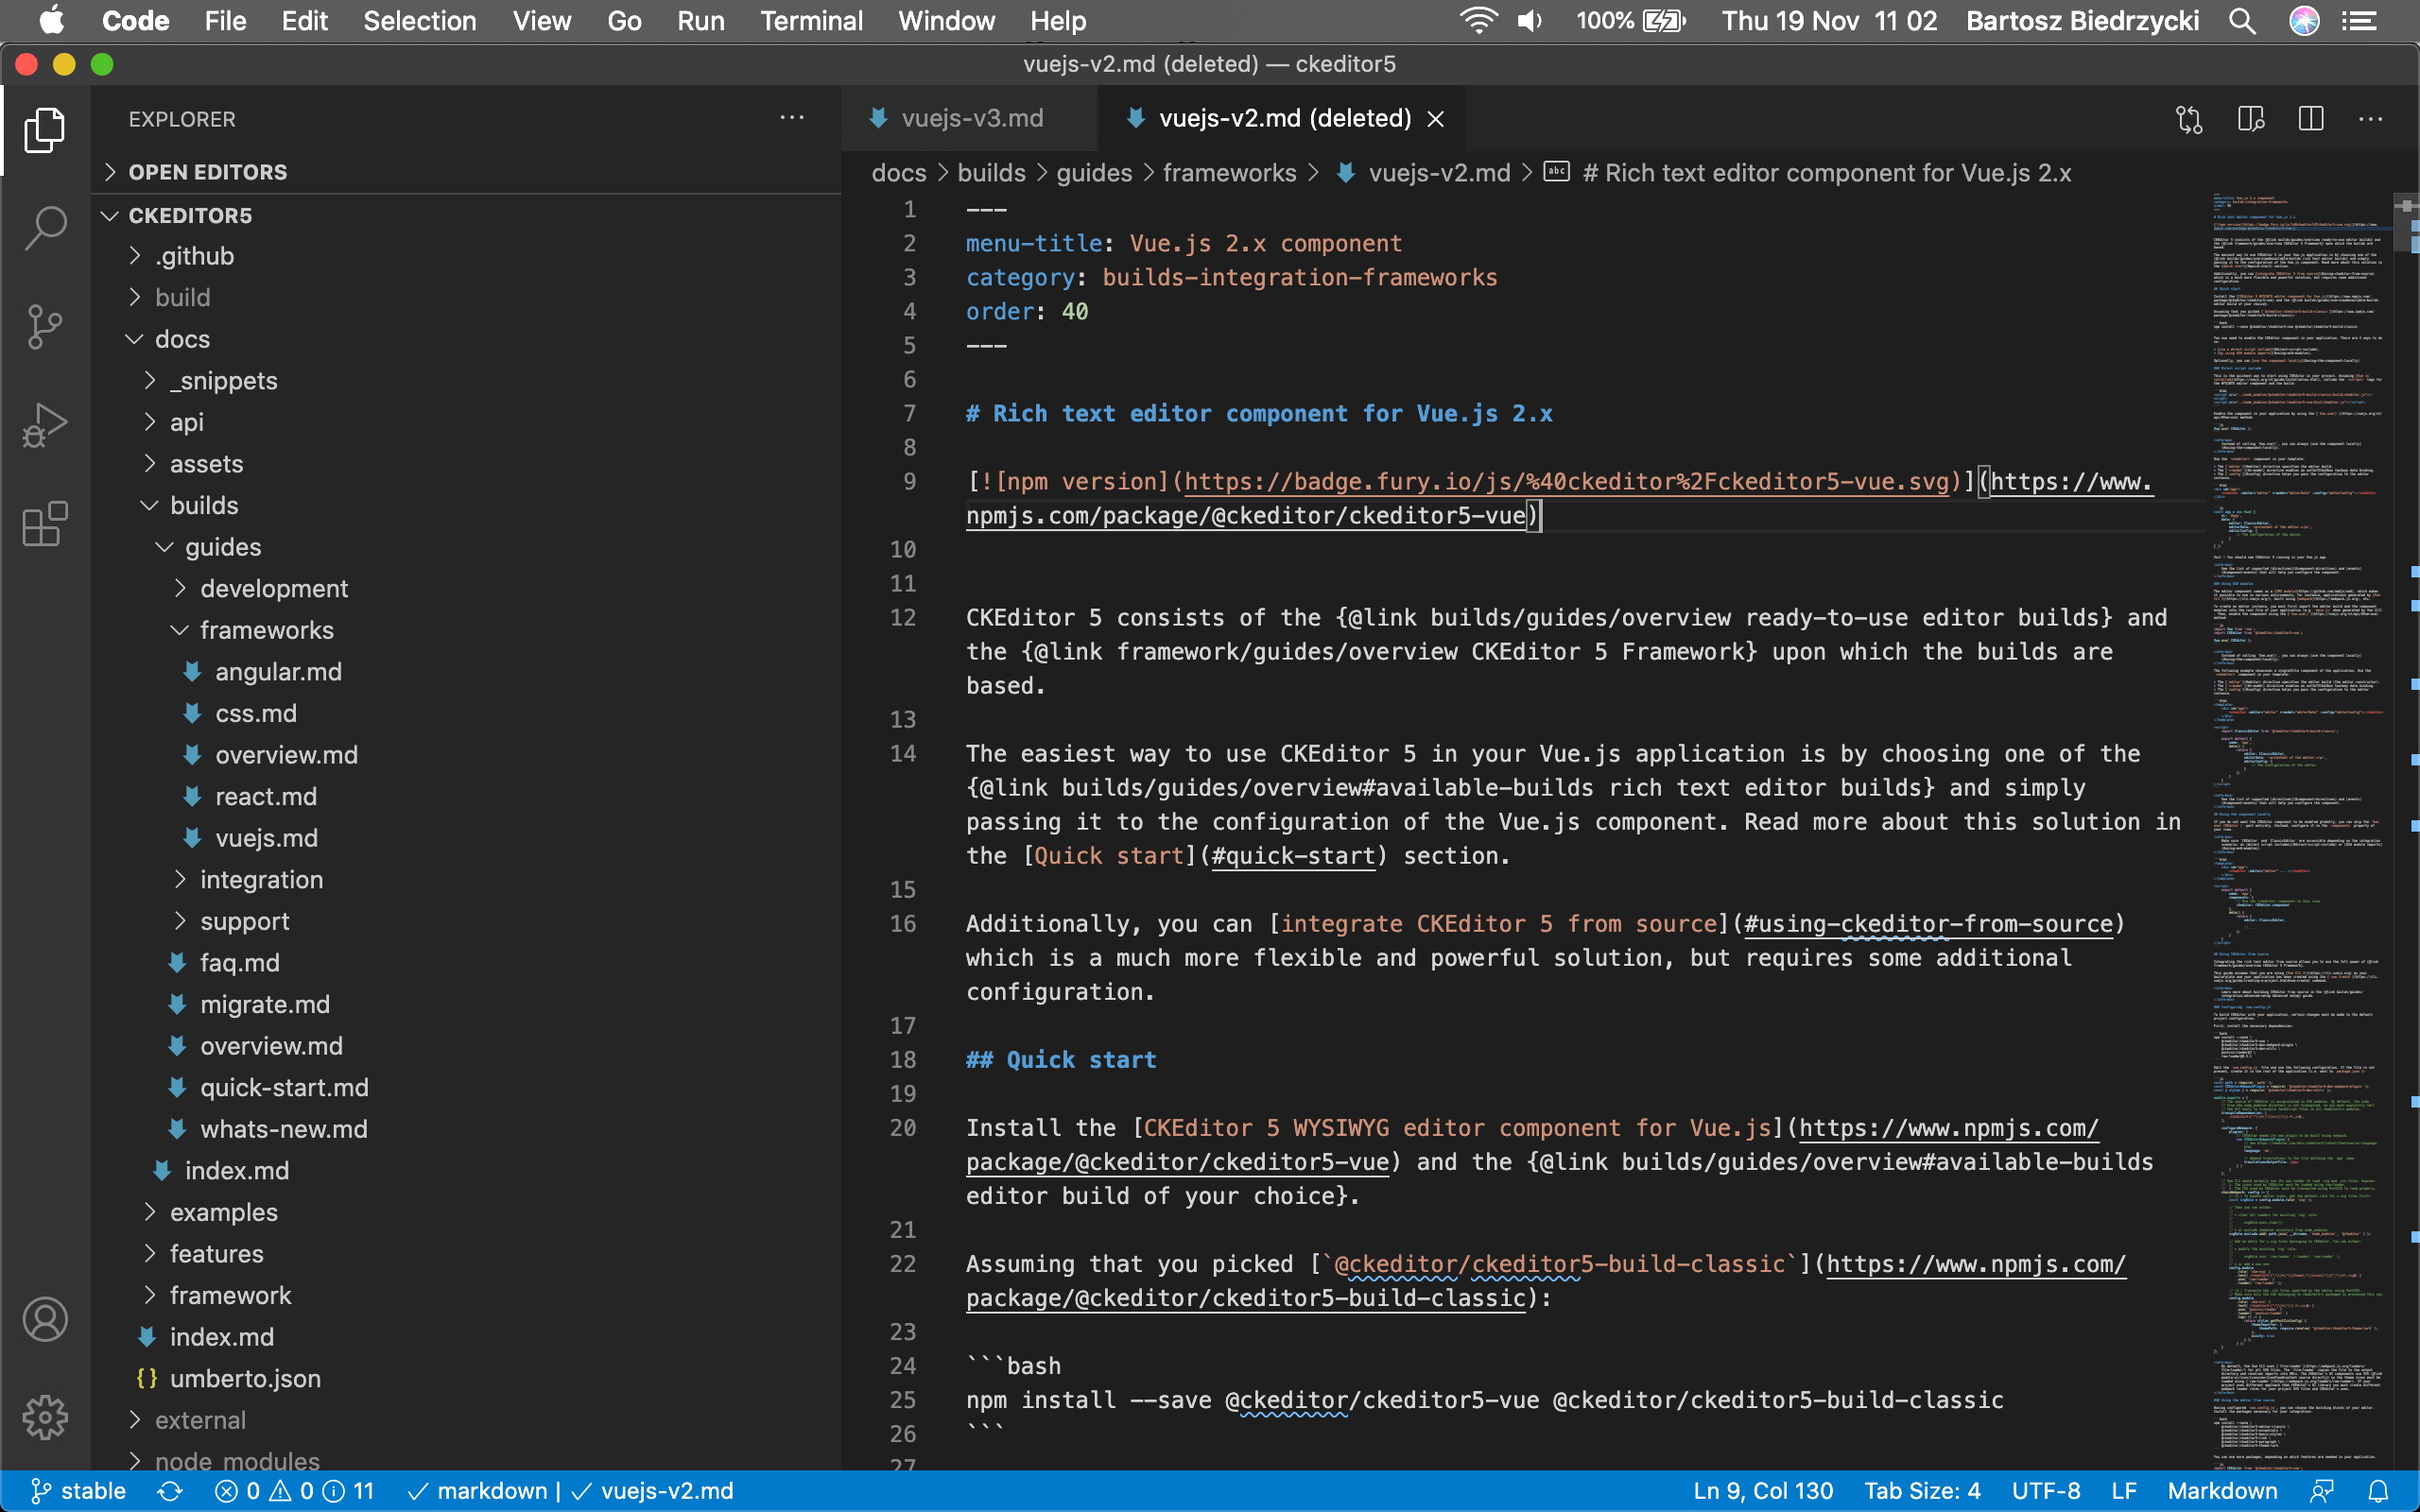 Markdown used to write documentation in the Visual Studio Code editor.